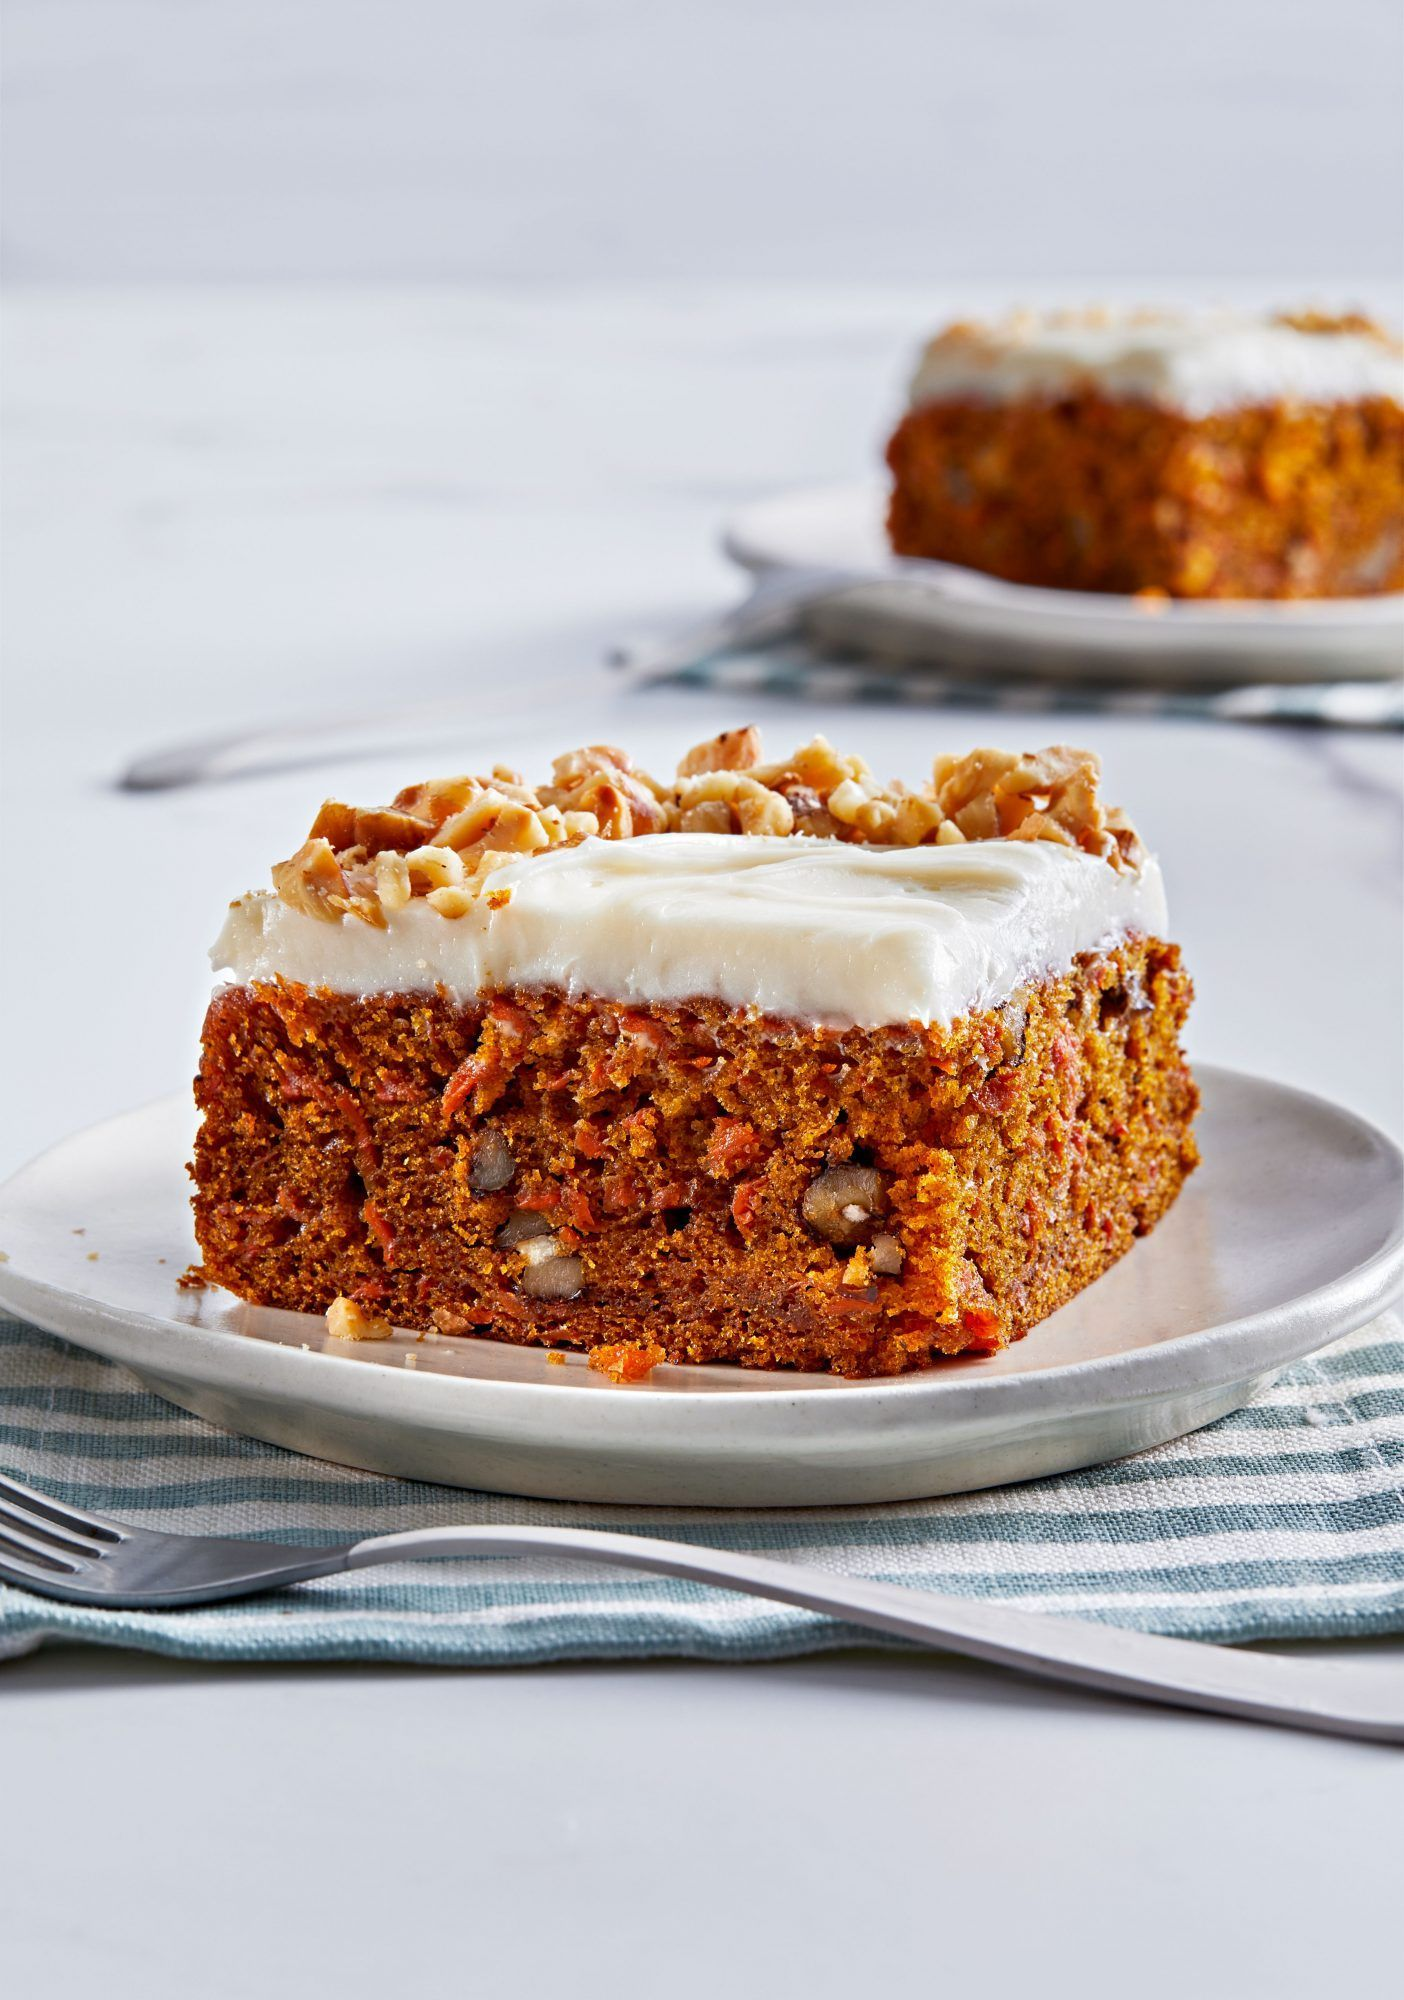 Carrot Walnut Snack Cake With Cream Cheese Frosting Recipe In 2021 Snack Cake Fruity Cake Carrot Cake Bars